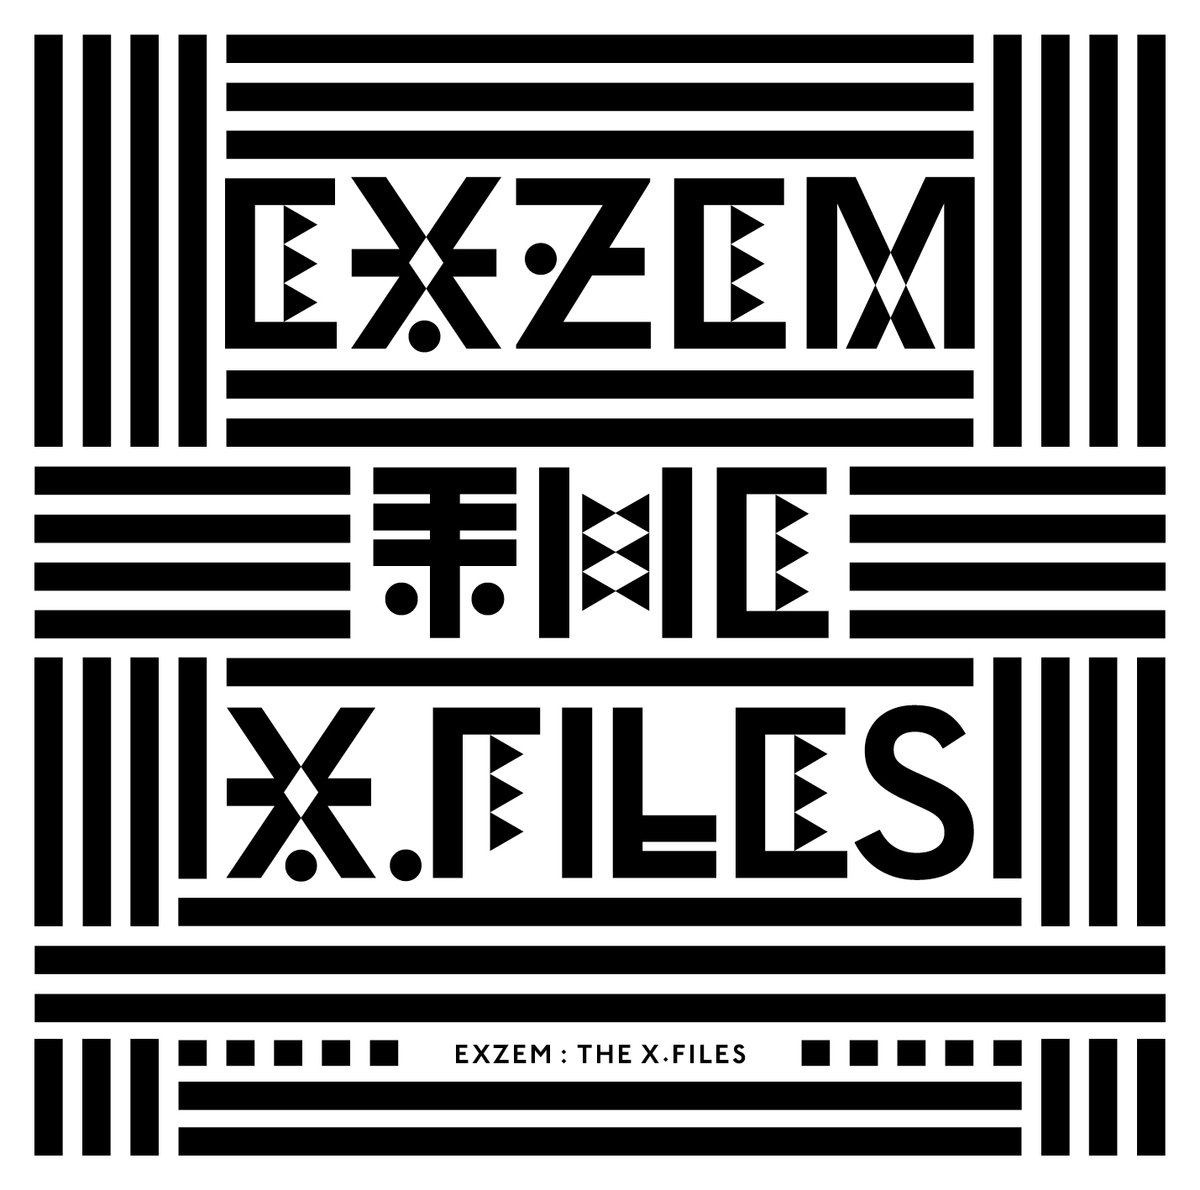 Exzem - The X Files